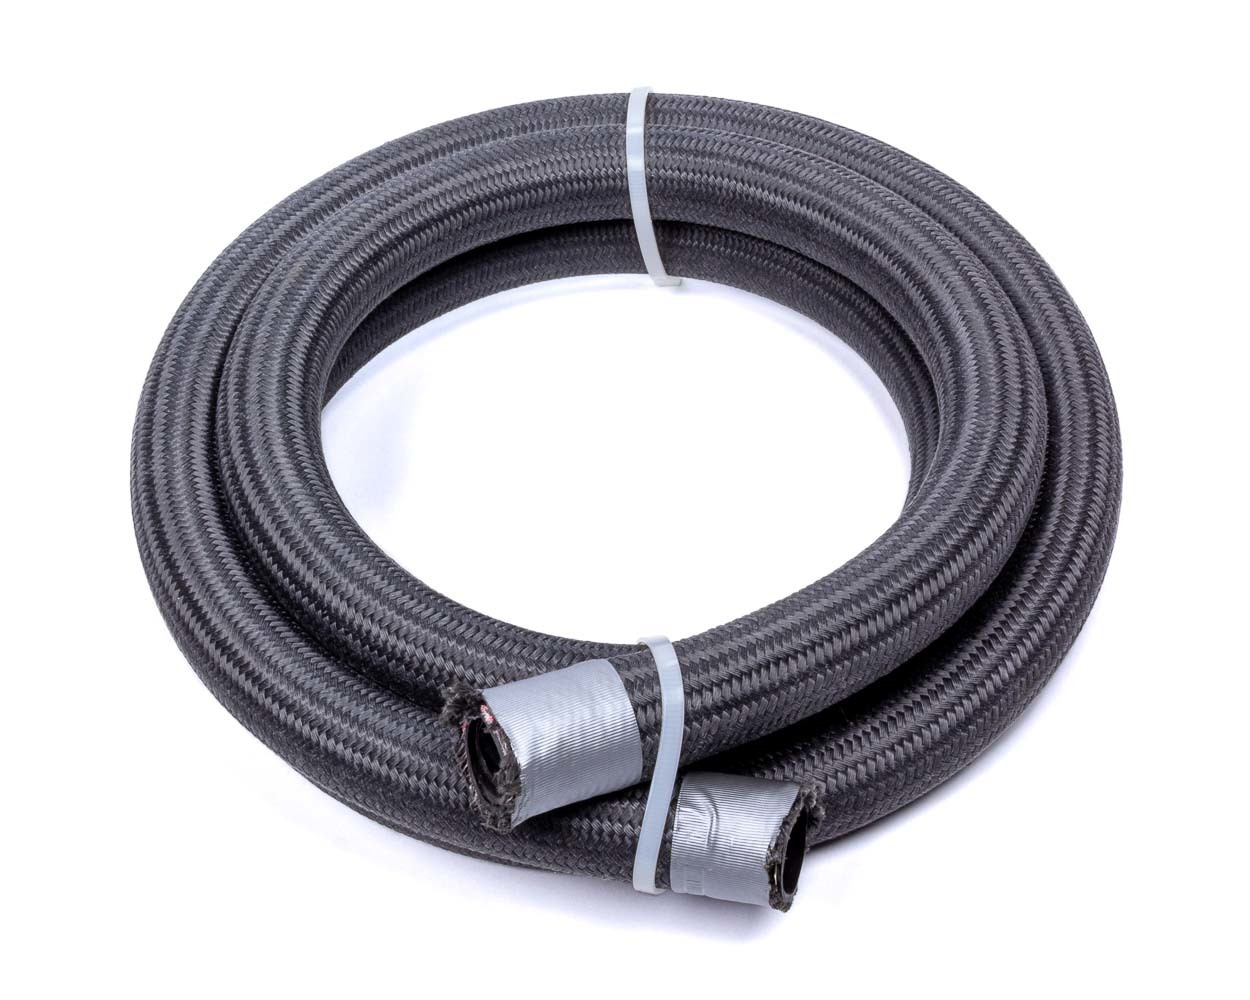 Fragola 2702012 Hose, Race-Rite, 12 AN, 20 ft, Braided Fire Retardant Fabric, PTFE, Black, Each